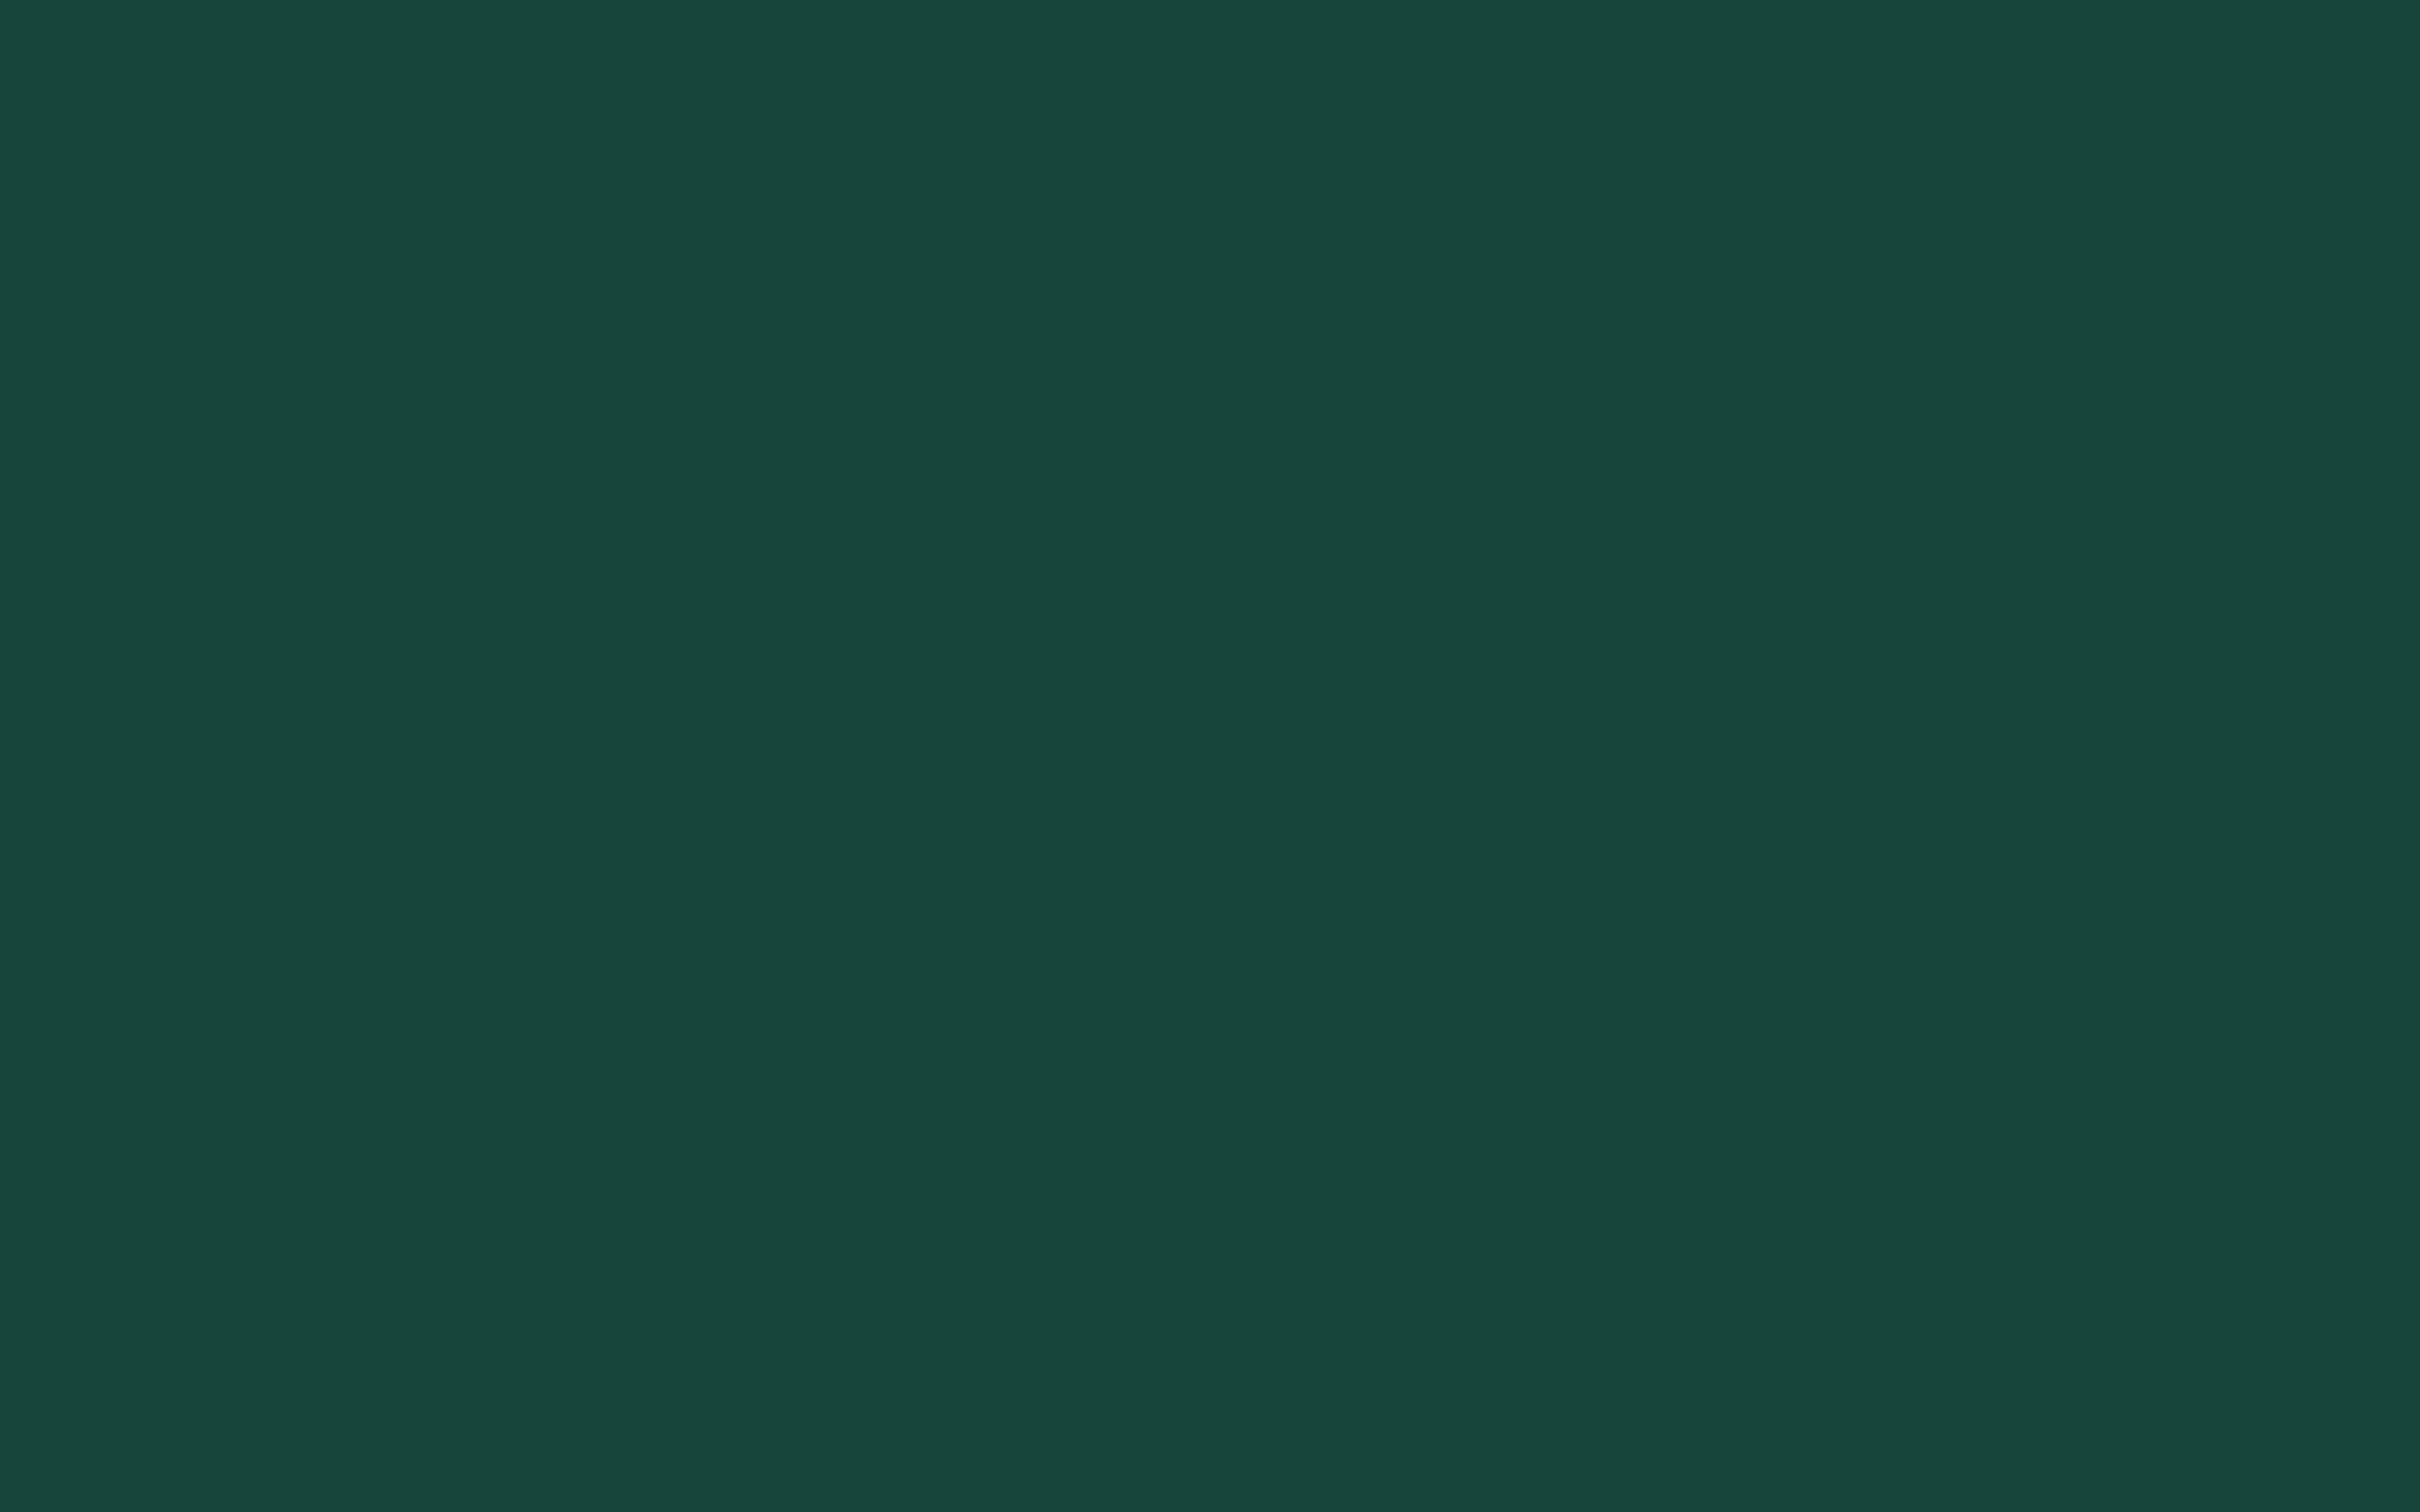 2560x1600 MSU Green Solid Color Background